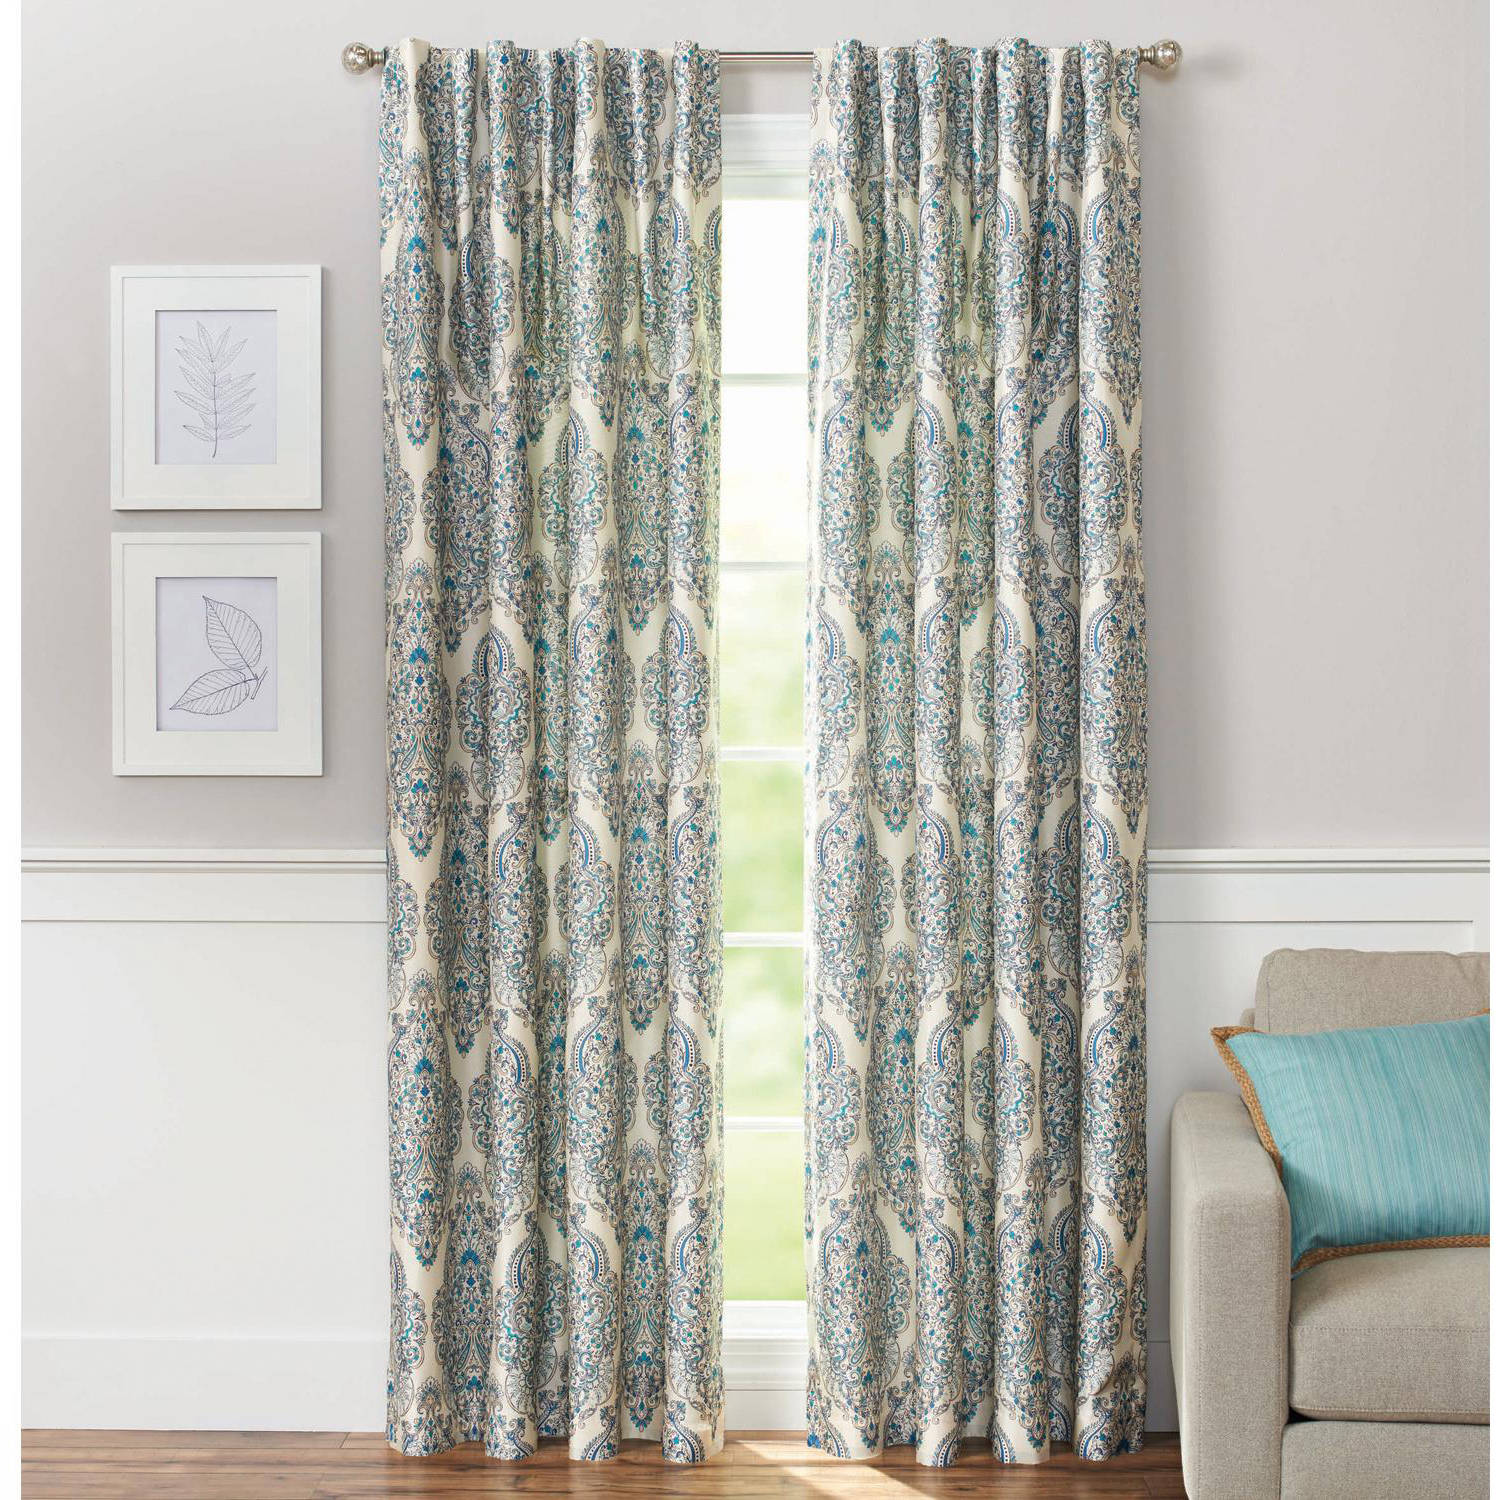 Better Homes and Gardens Persian Damask with Room-Darkening Lining Rod Pocket Window Panel, Blue